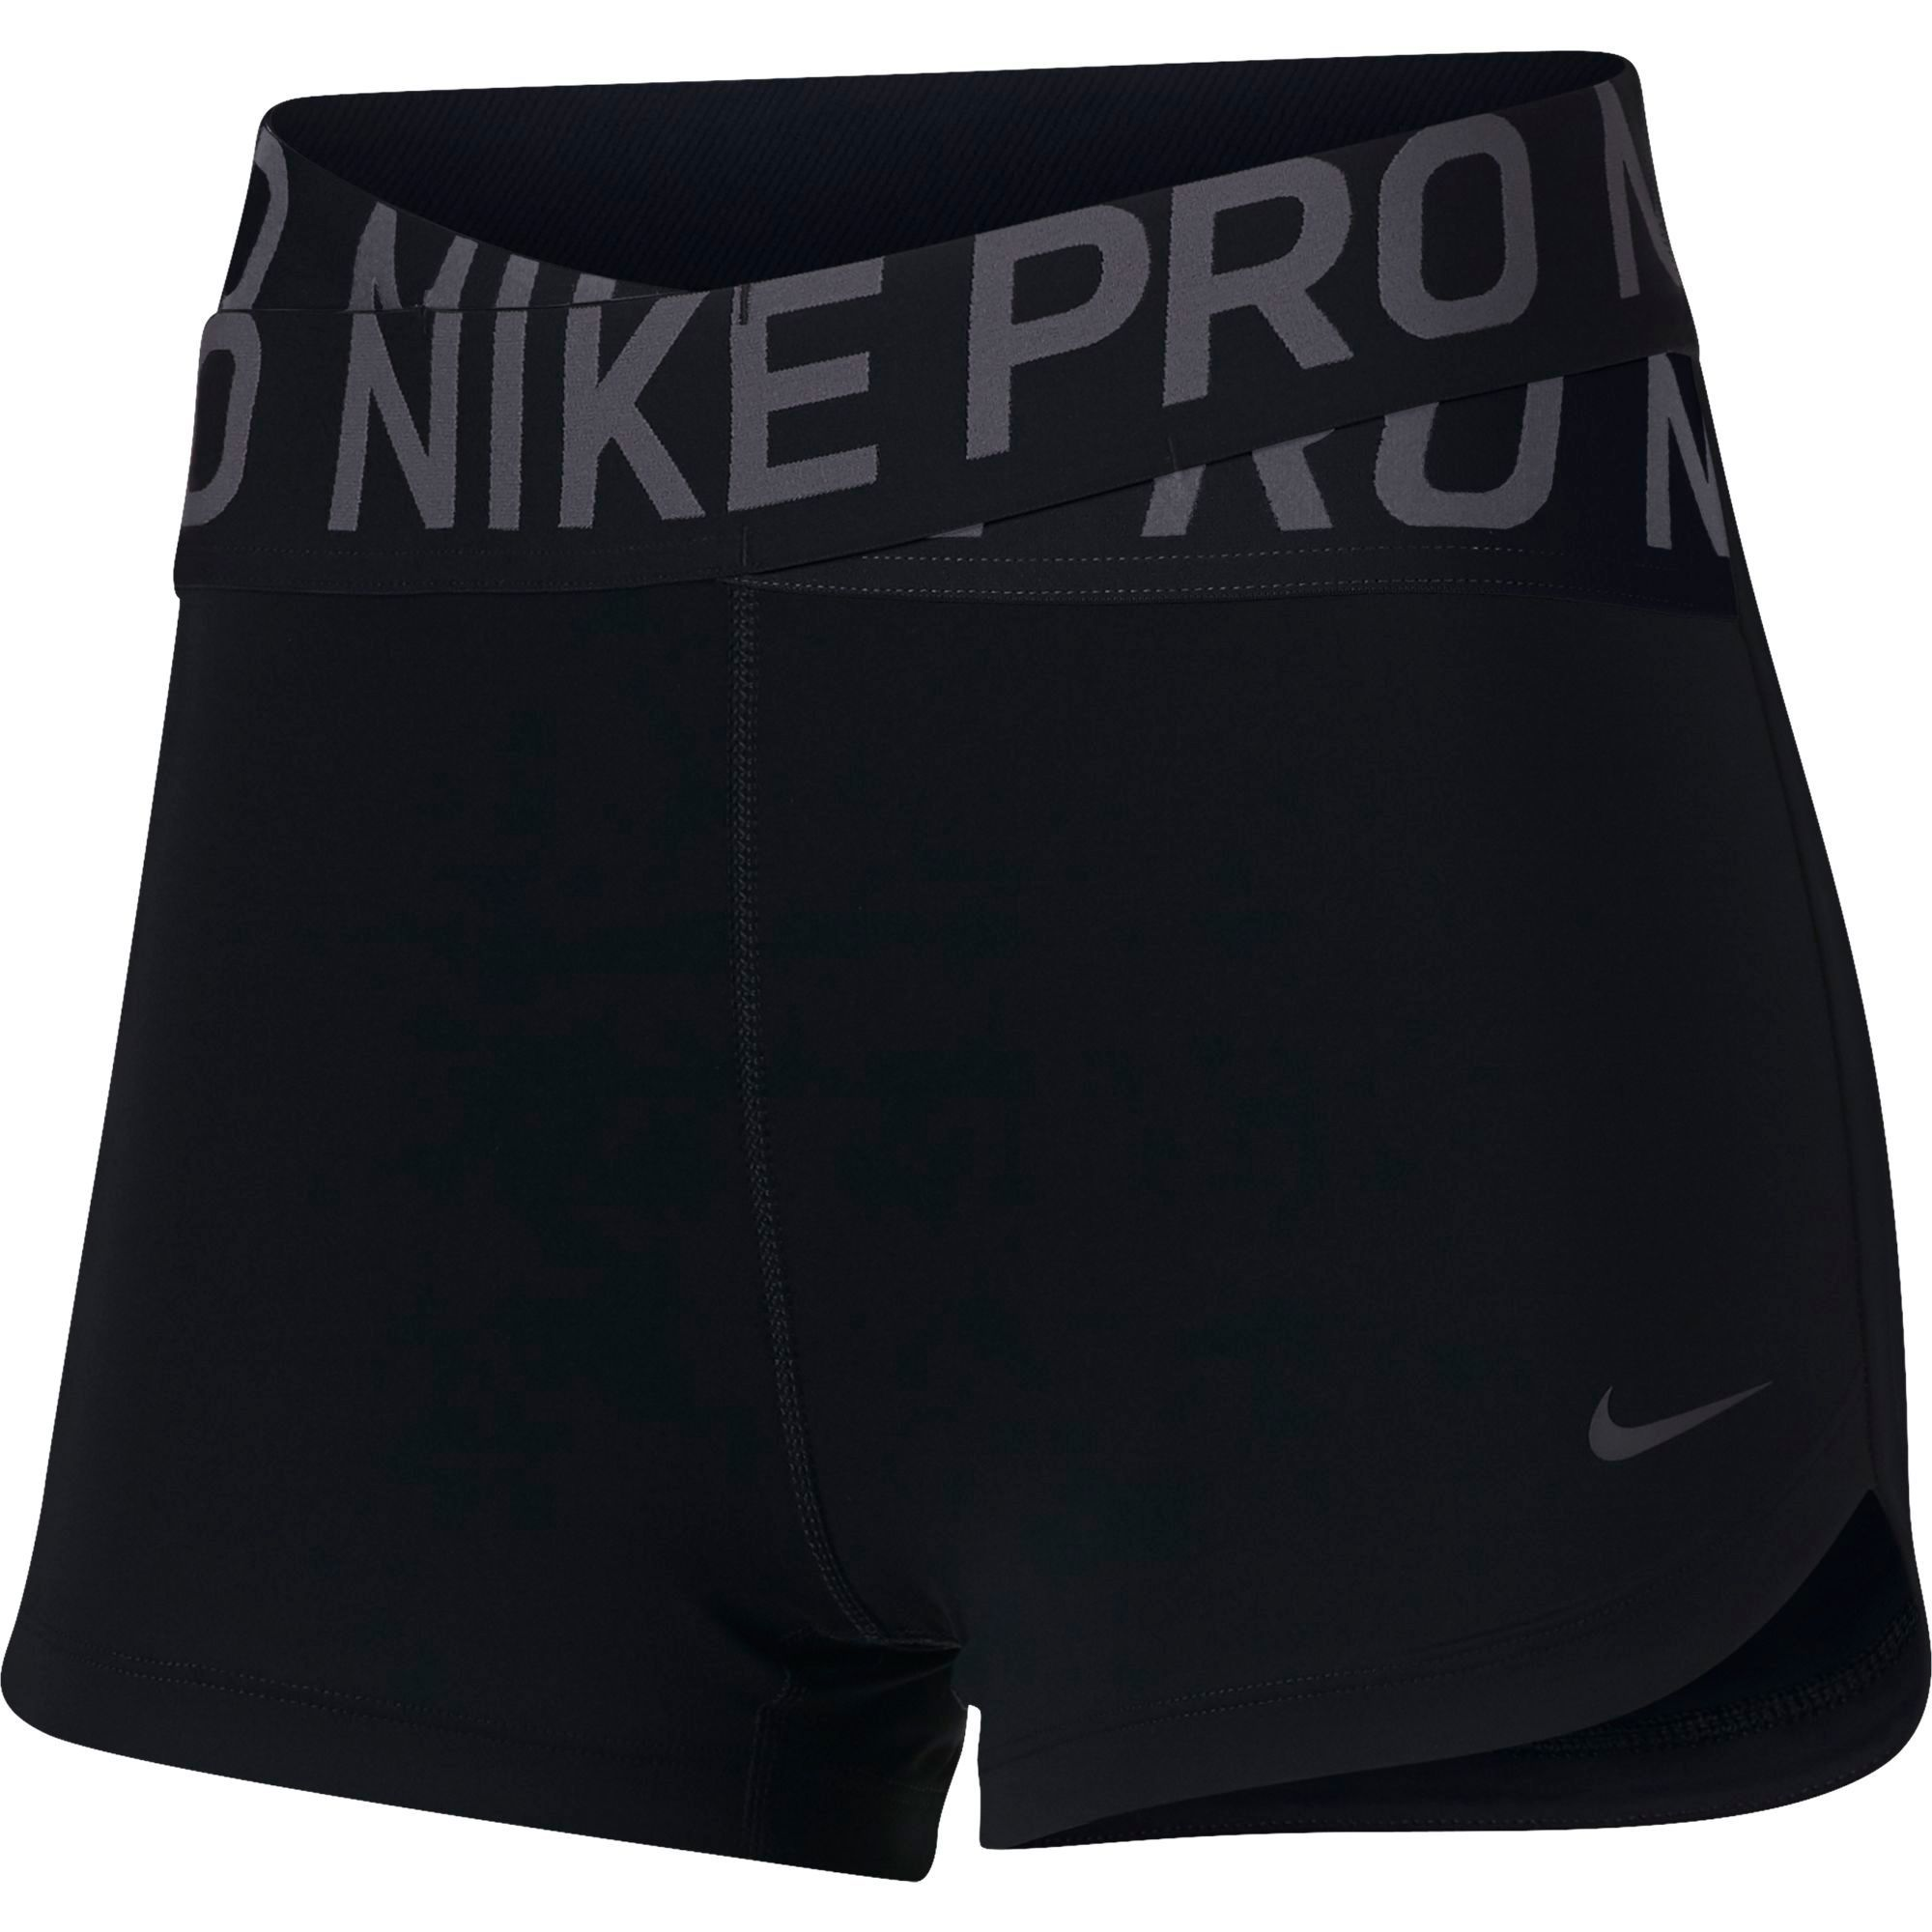 Nike Women S 3a Intertwist Shorts Black Sporty Outfits Nike Outfits Nike Spandex Shorts